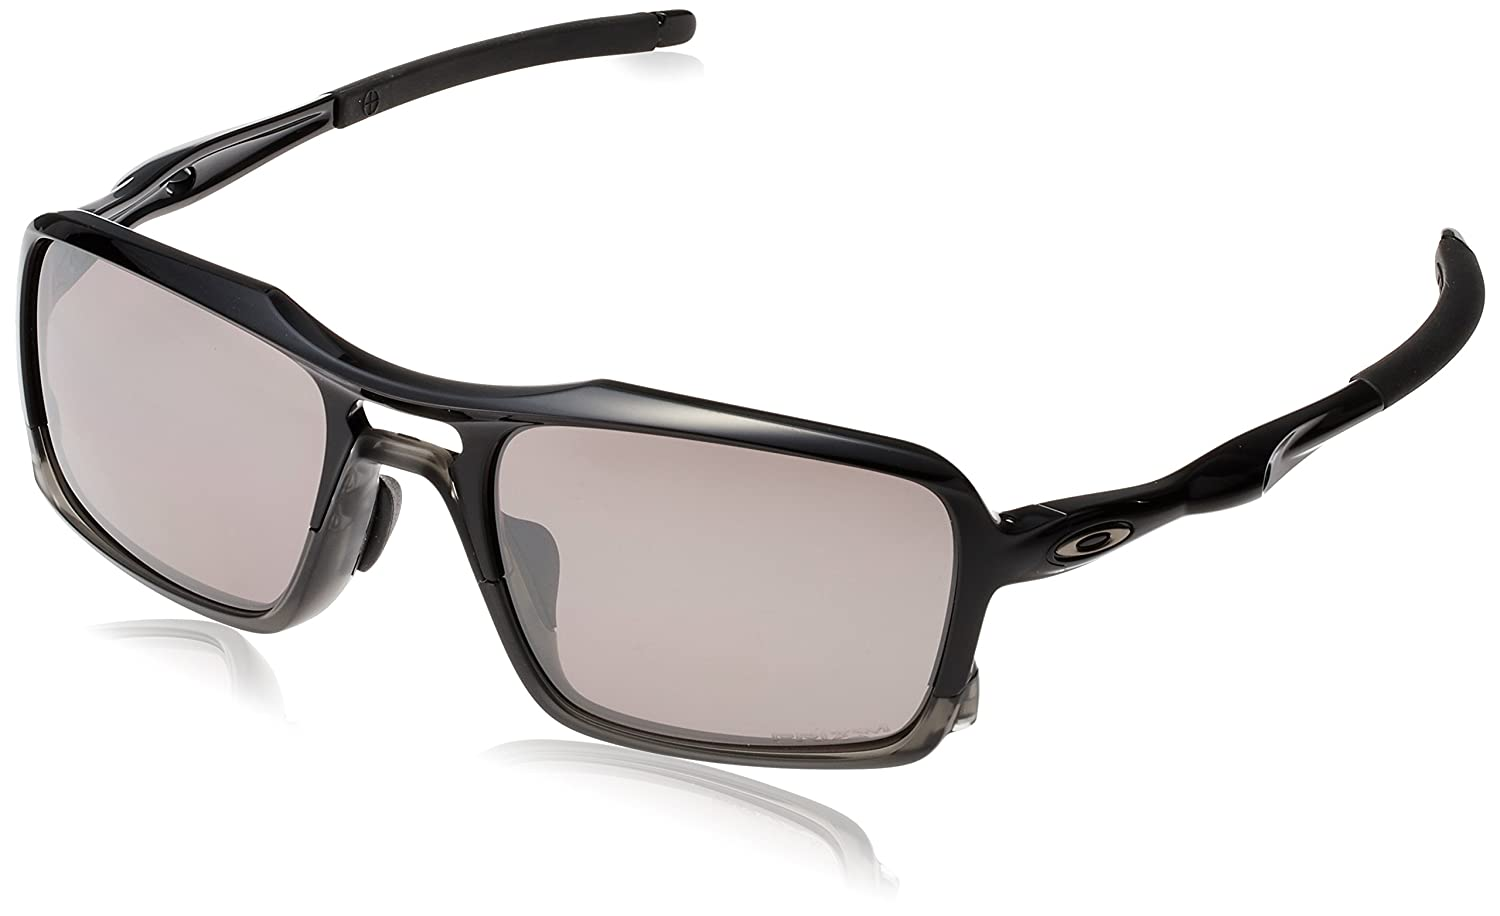 3865f35fe0b Oakley Men s (a) Triggerman OO9314-06 Polarized Iridium Rectangular  Sunglasses